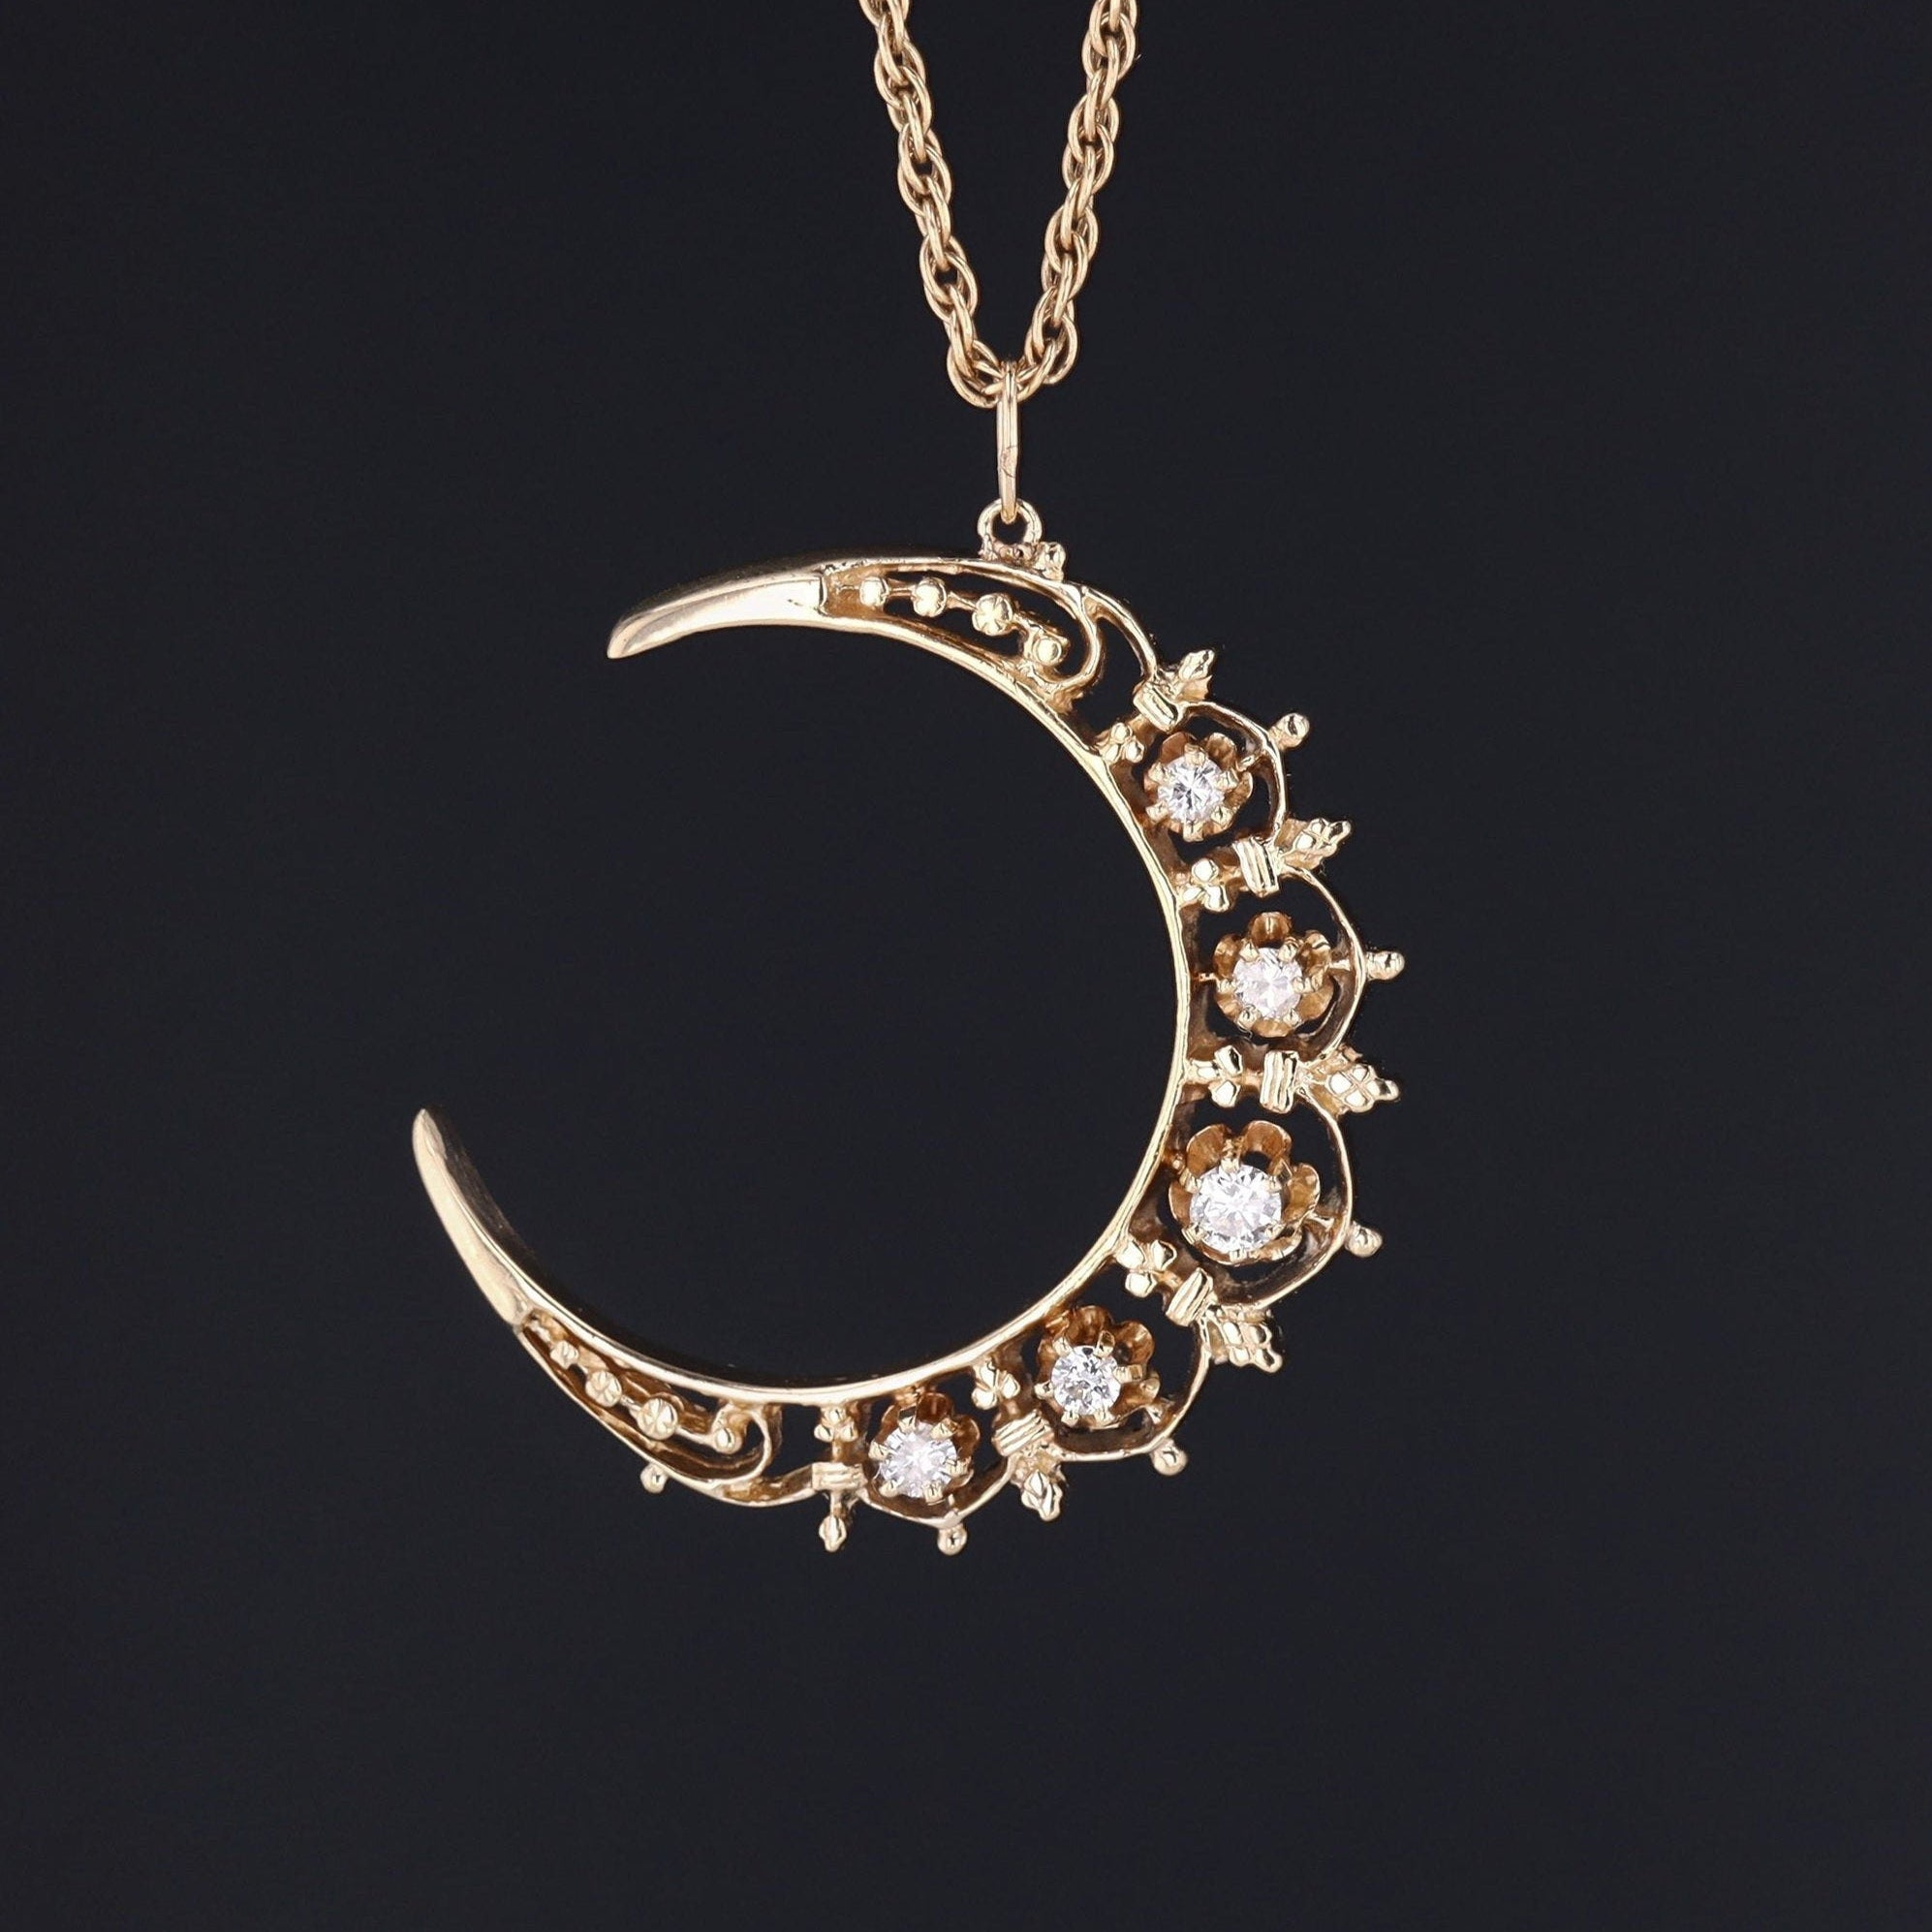 Vintage Diamond Crescent Moon Pendant | Vintage Diamond Moon | 14K Gold Pendant on Optional 14k Chain | Pin Conversion